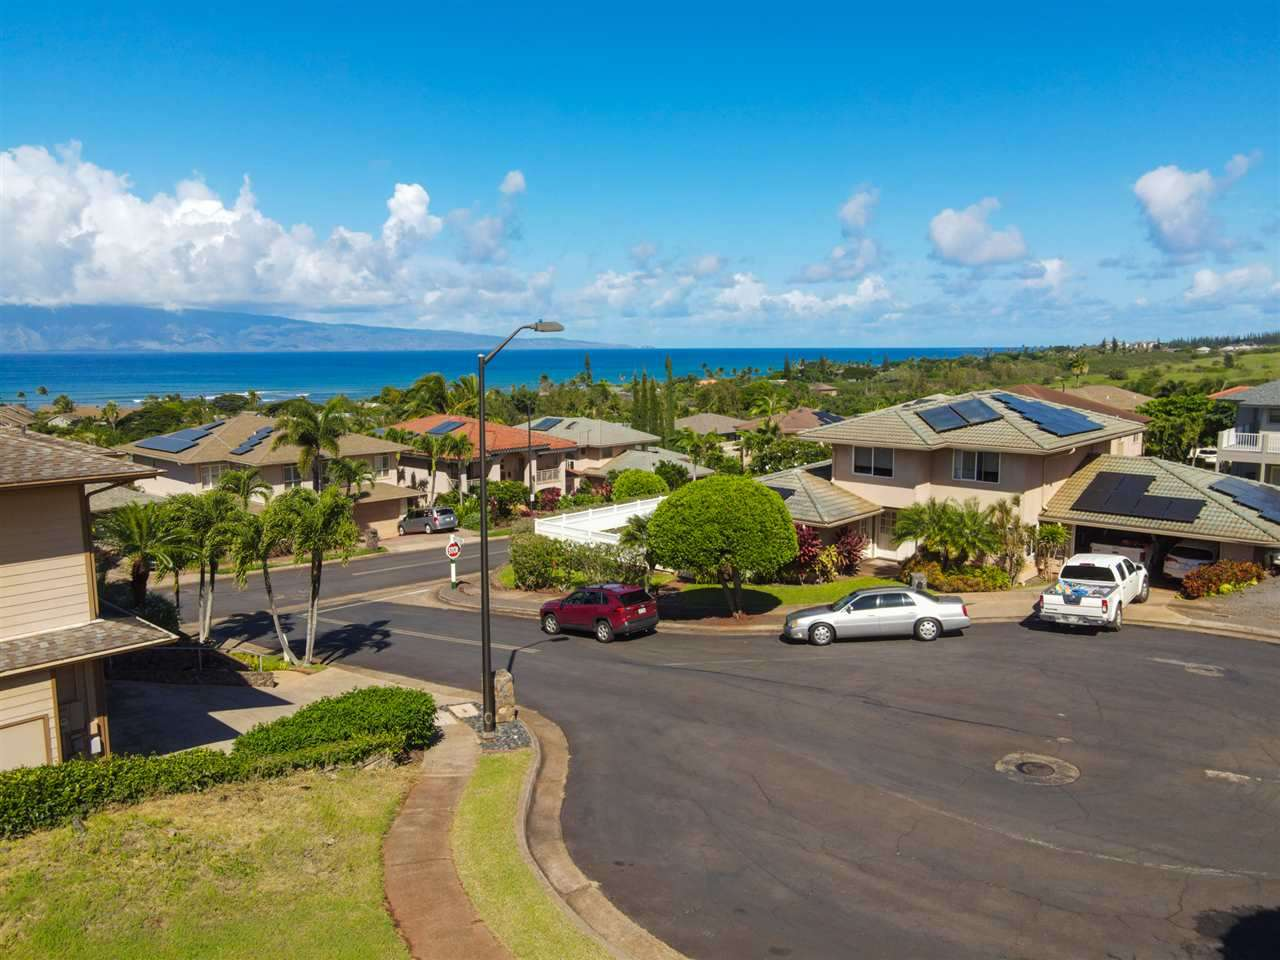 Maui Home for sale 389481